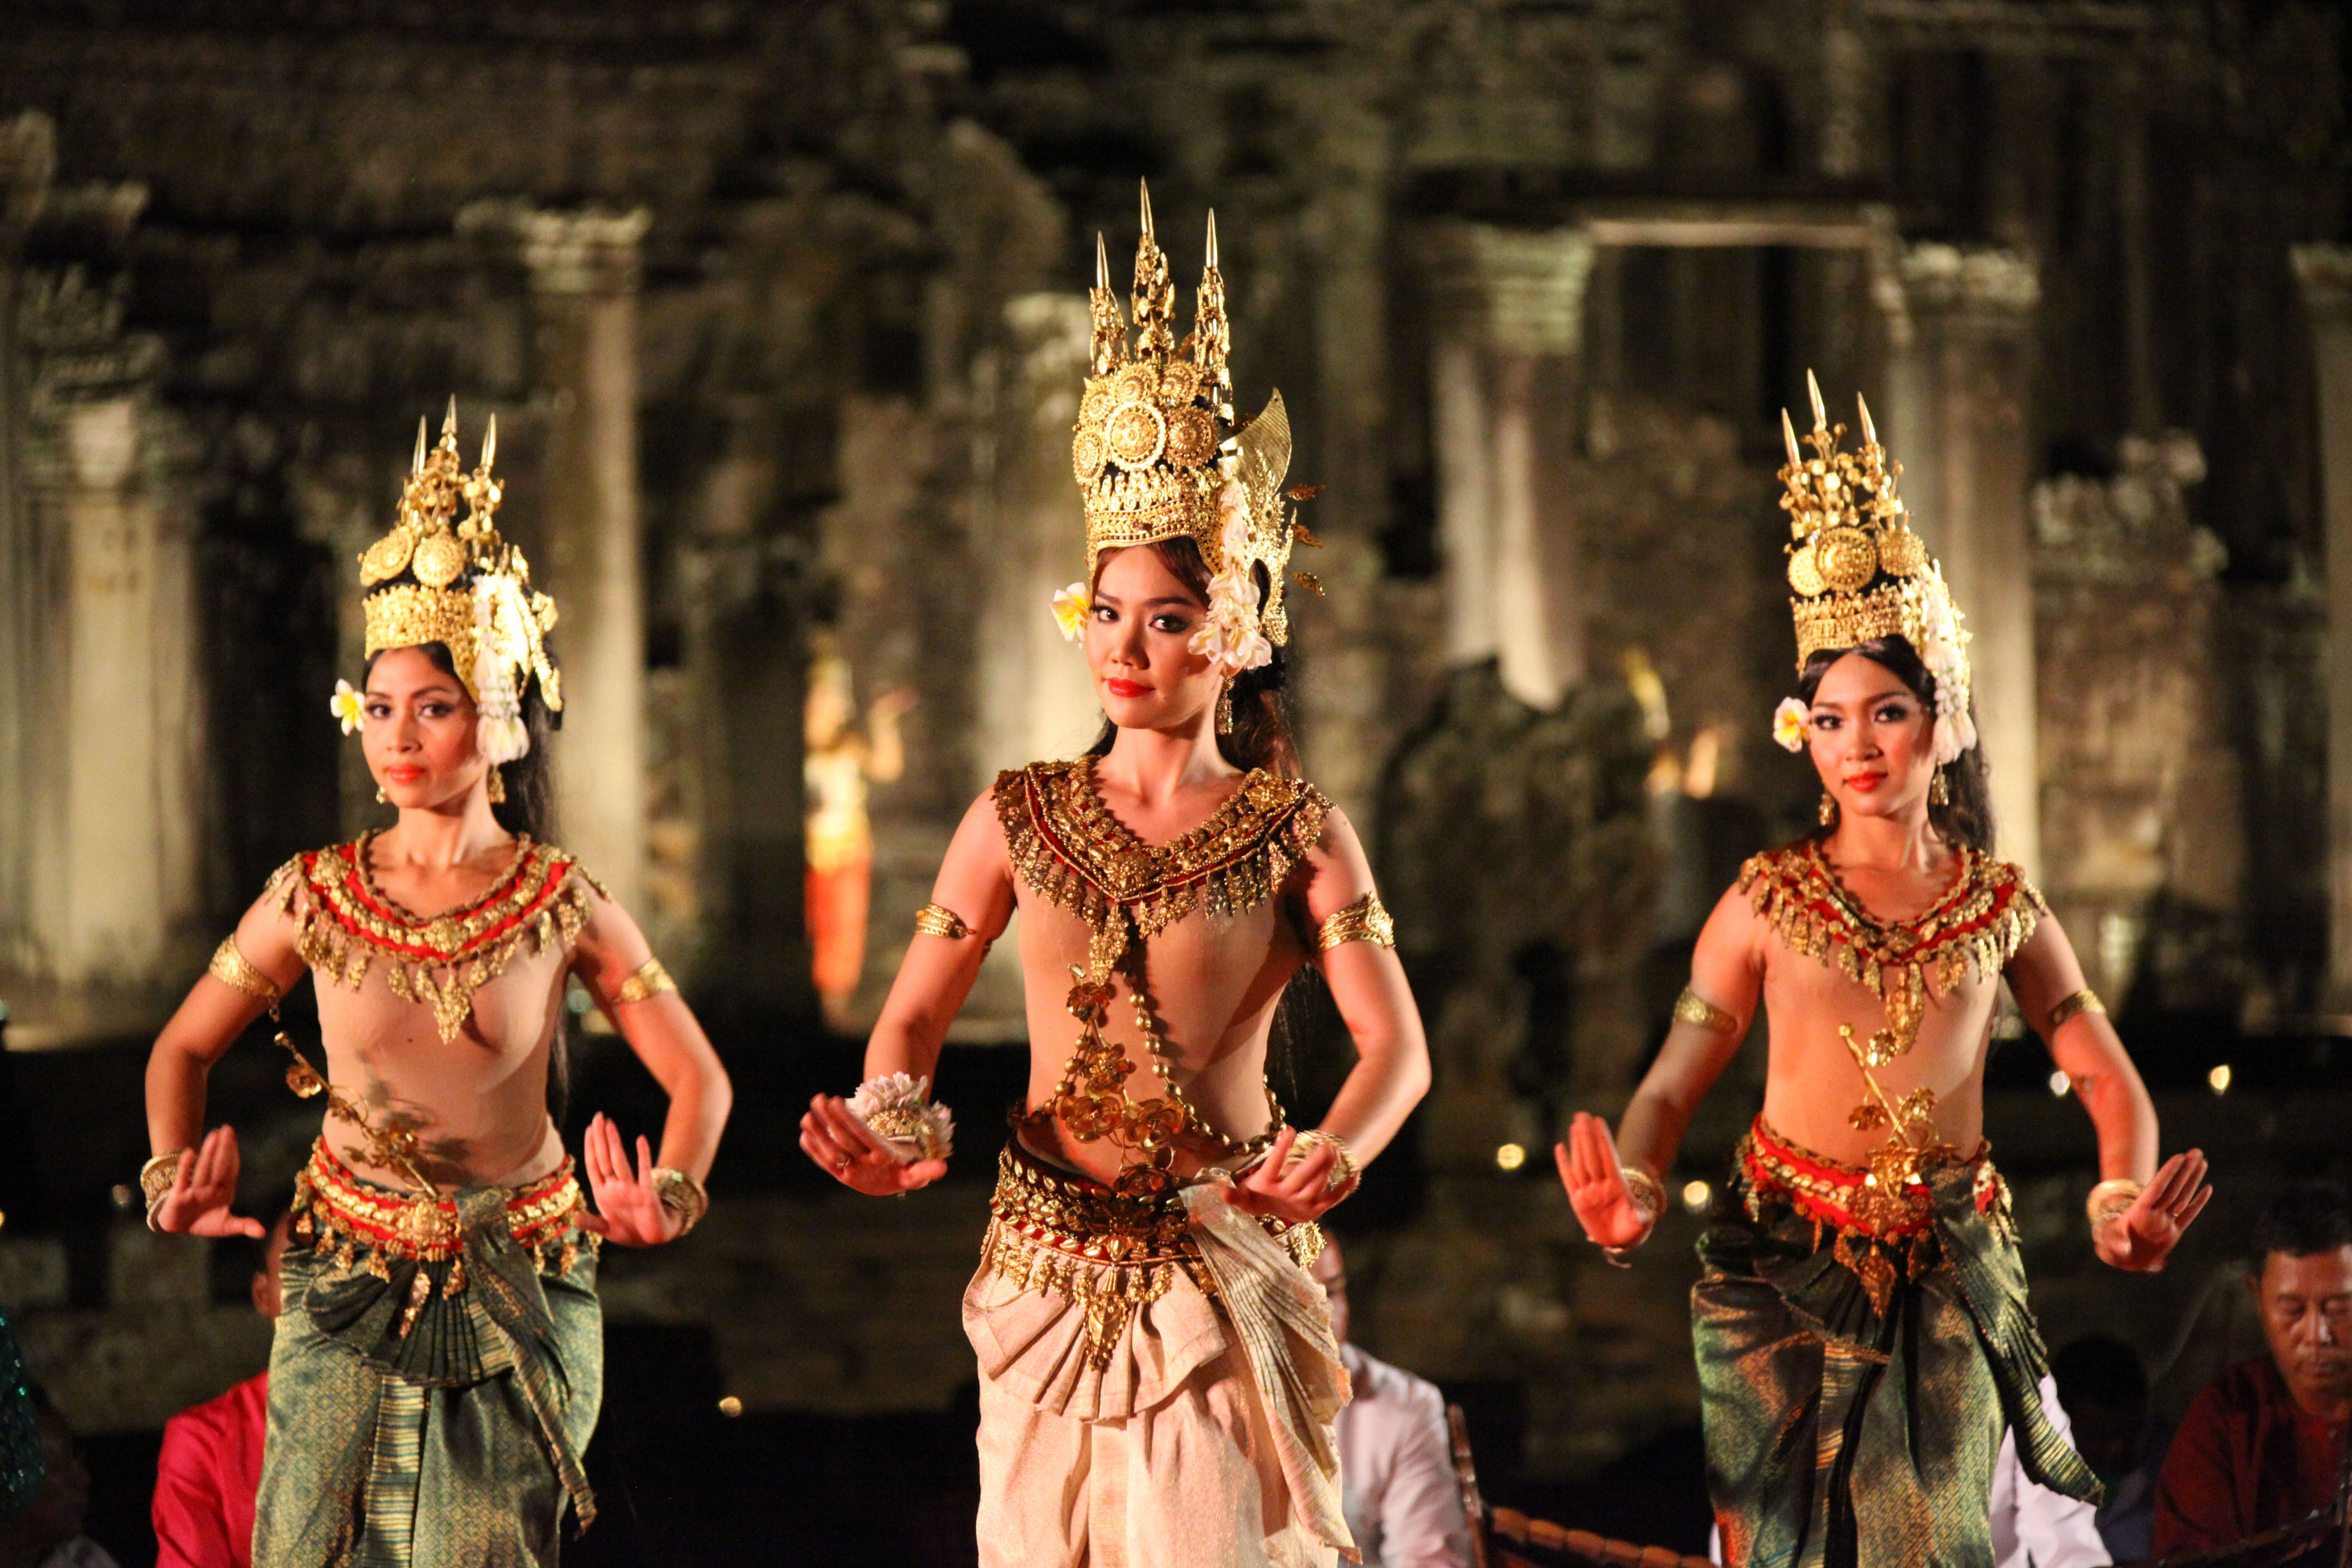 Welcome To Angkor Continental Tour Services And Travel Agency In Siem Reap Cambodia We Create Our Tour In Order To Shar Cambodian Women Cambodia Dance Images